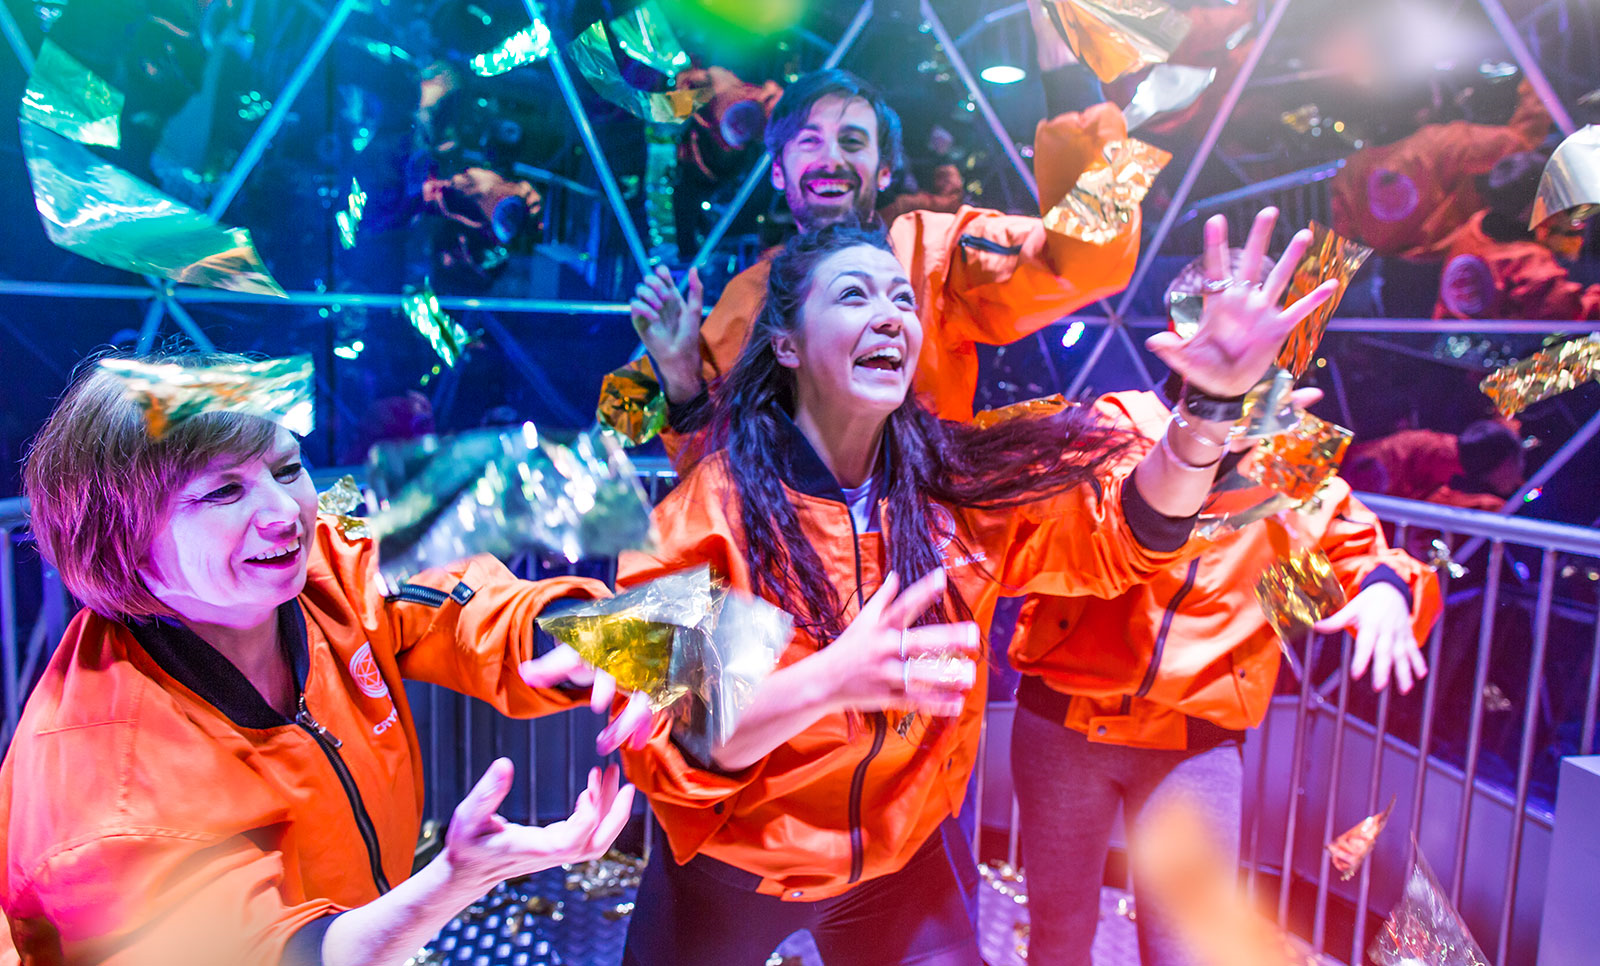 The Crystal Maze - Halloween Edition   Best Places For Halloween in London   Clink Hostels